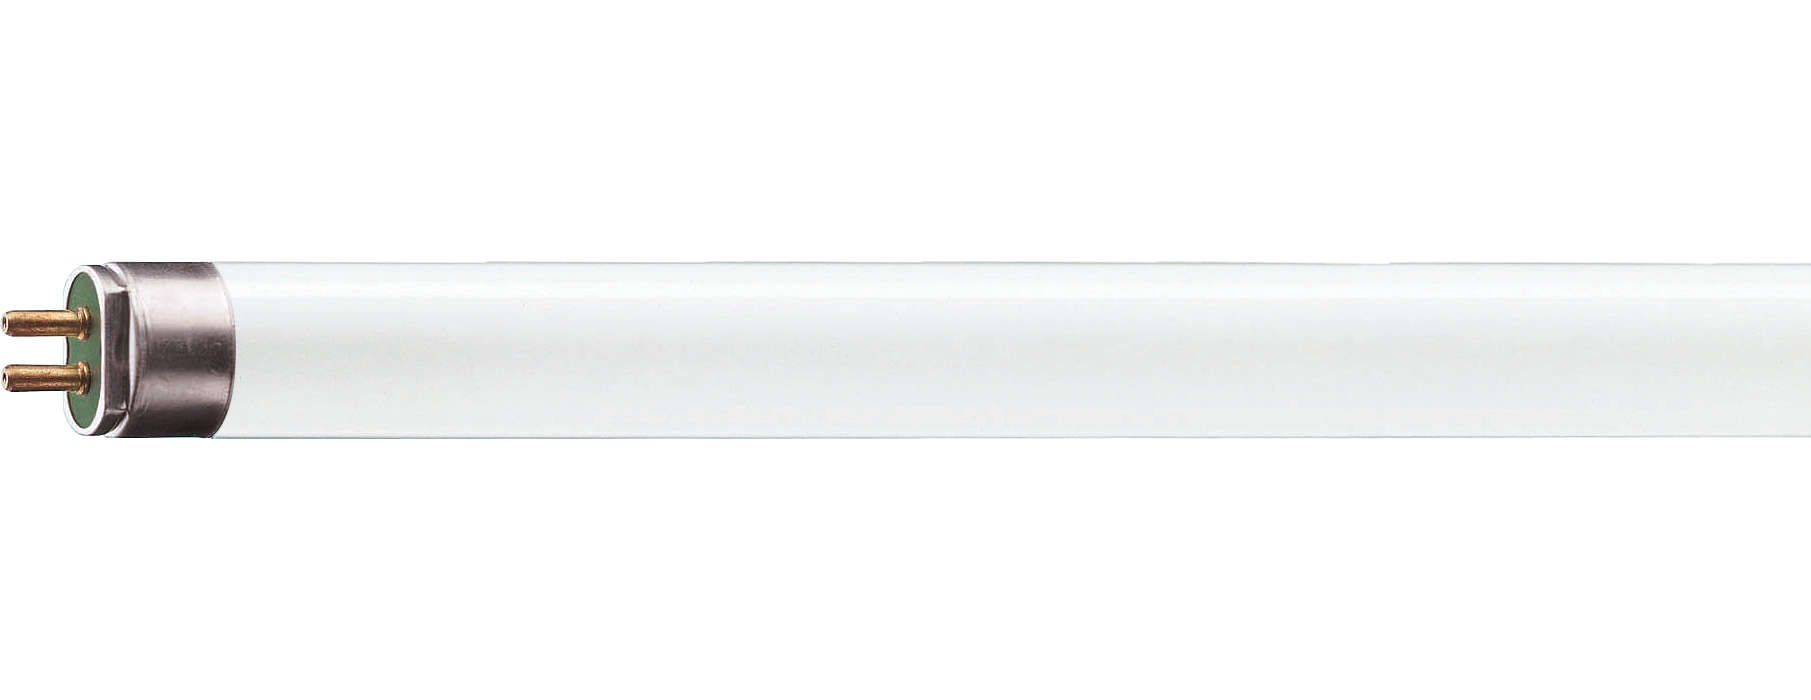 Powerful, environmentally-responsible ultra-slim lamps